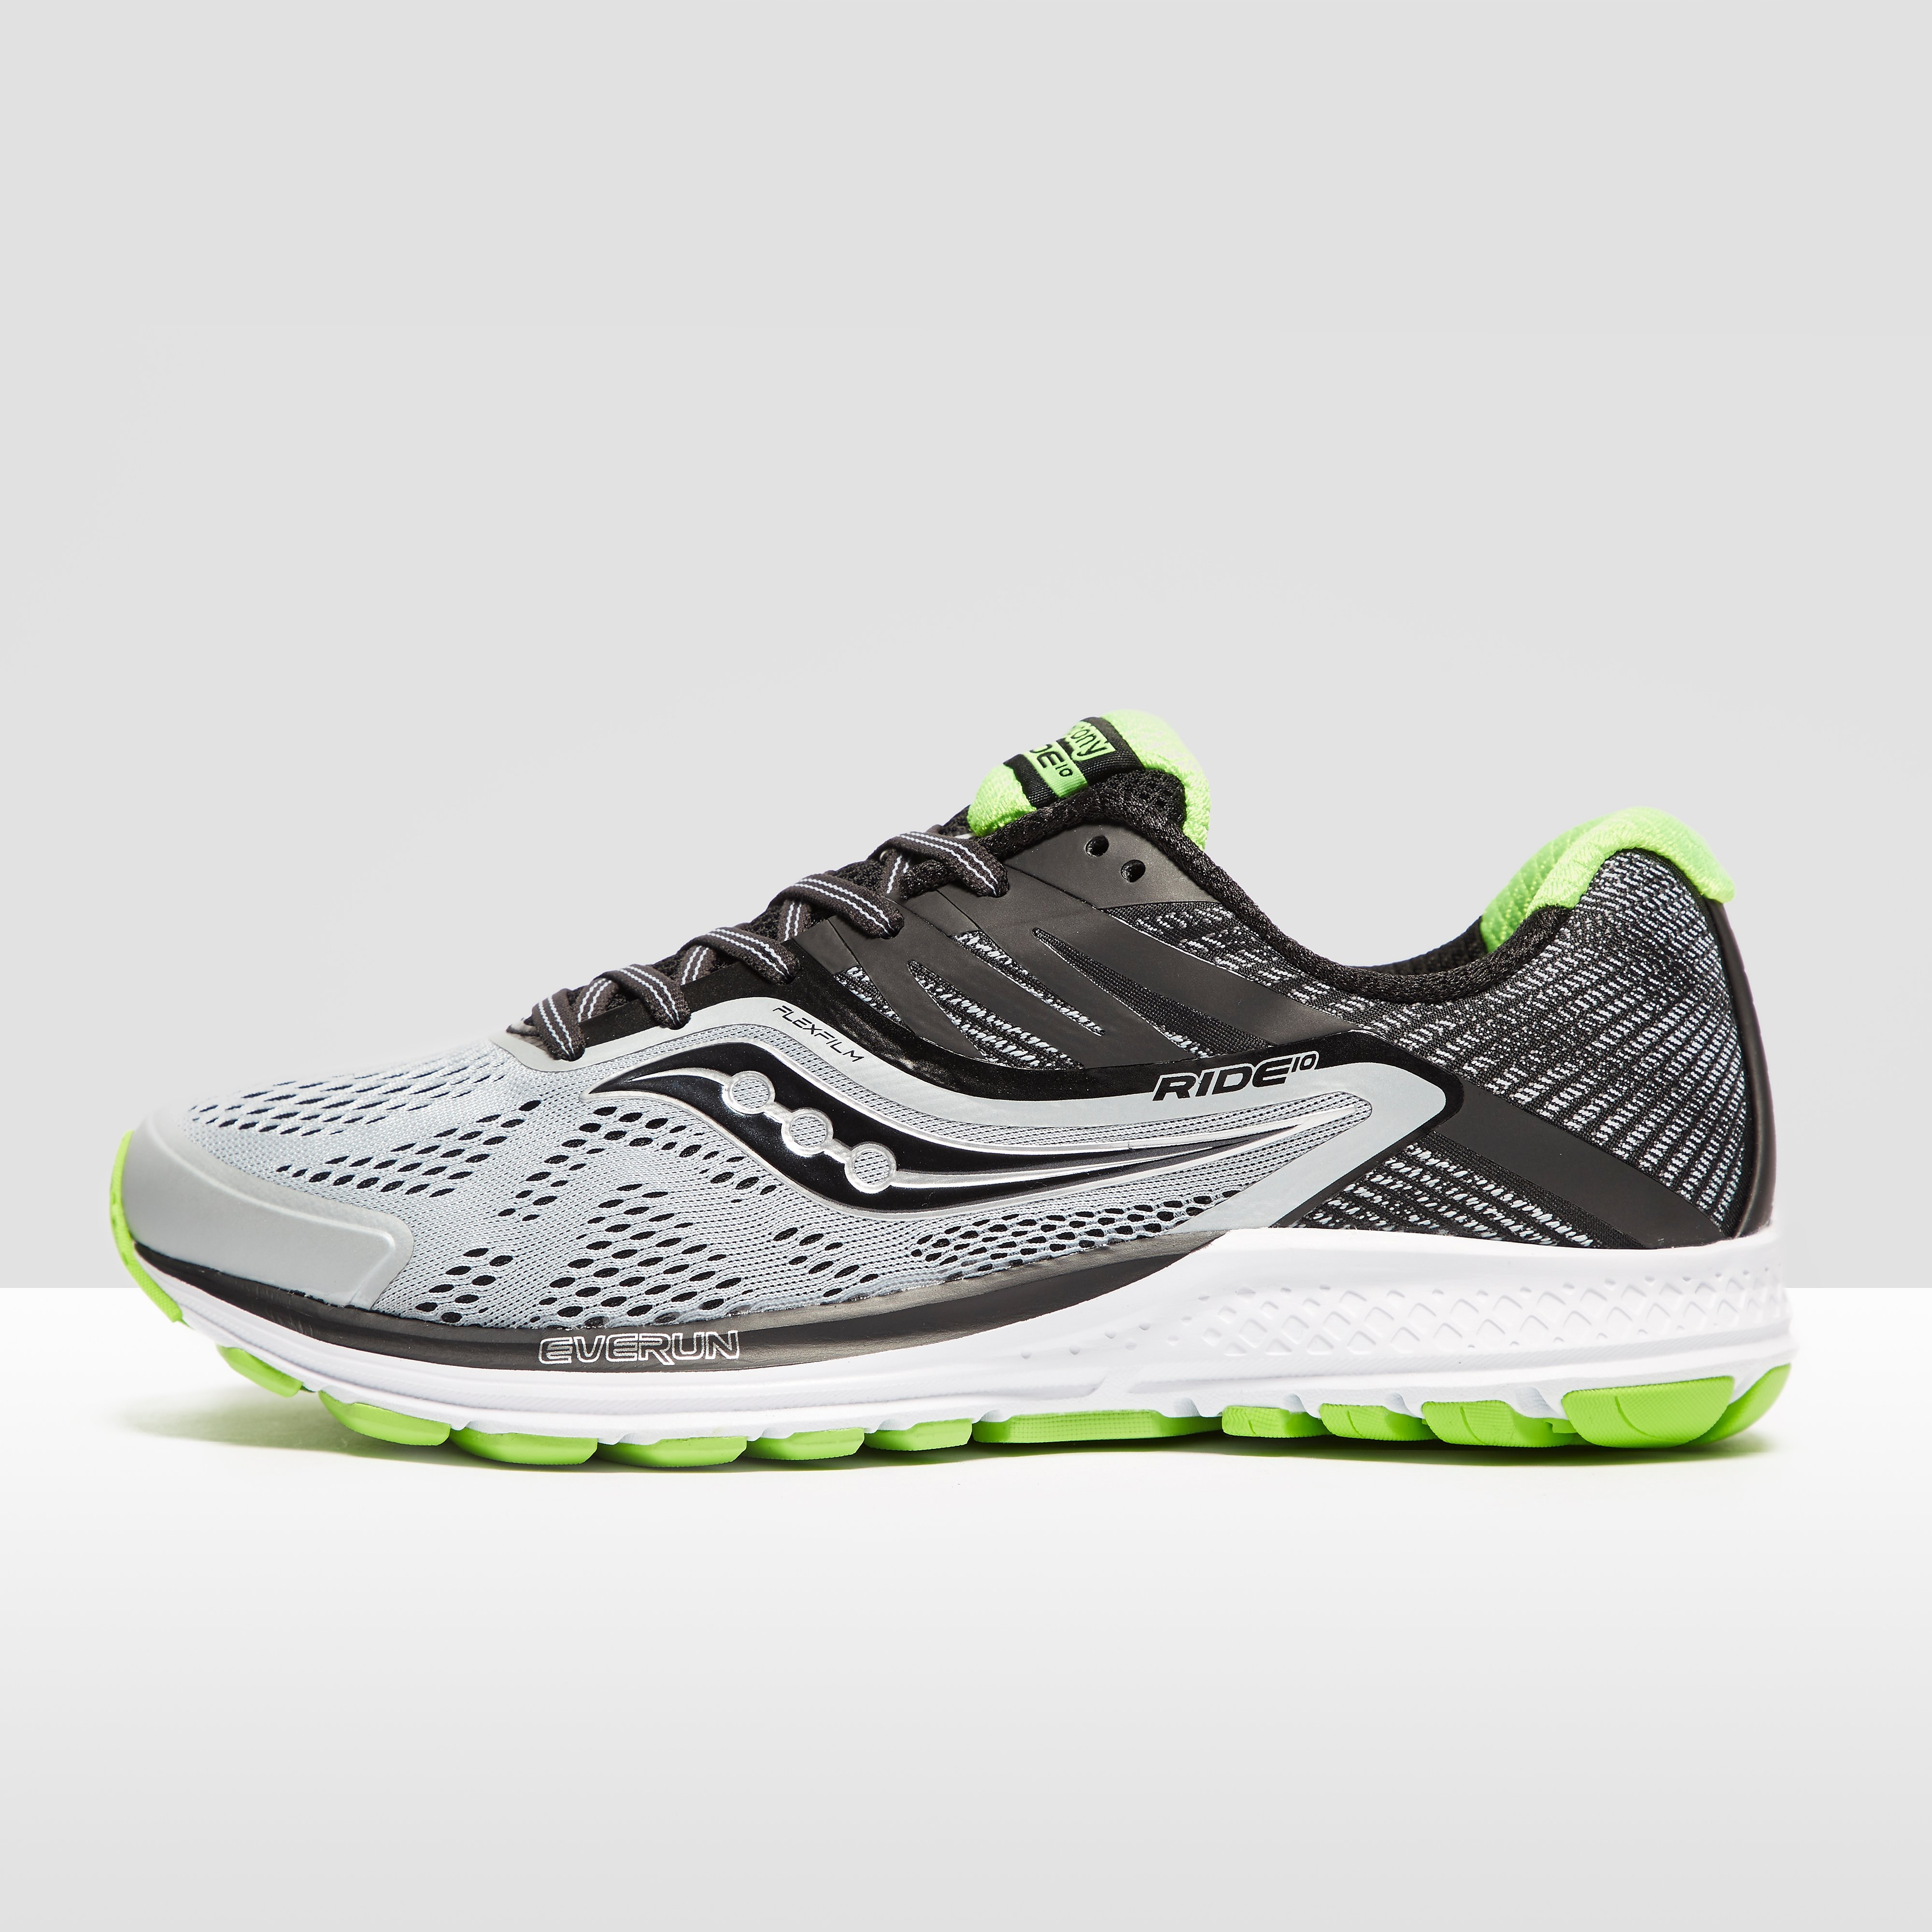 Saucony Ride 10 Men's Running Shoes